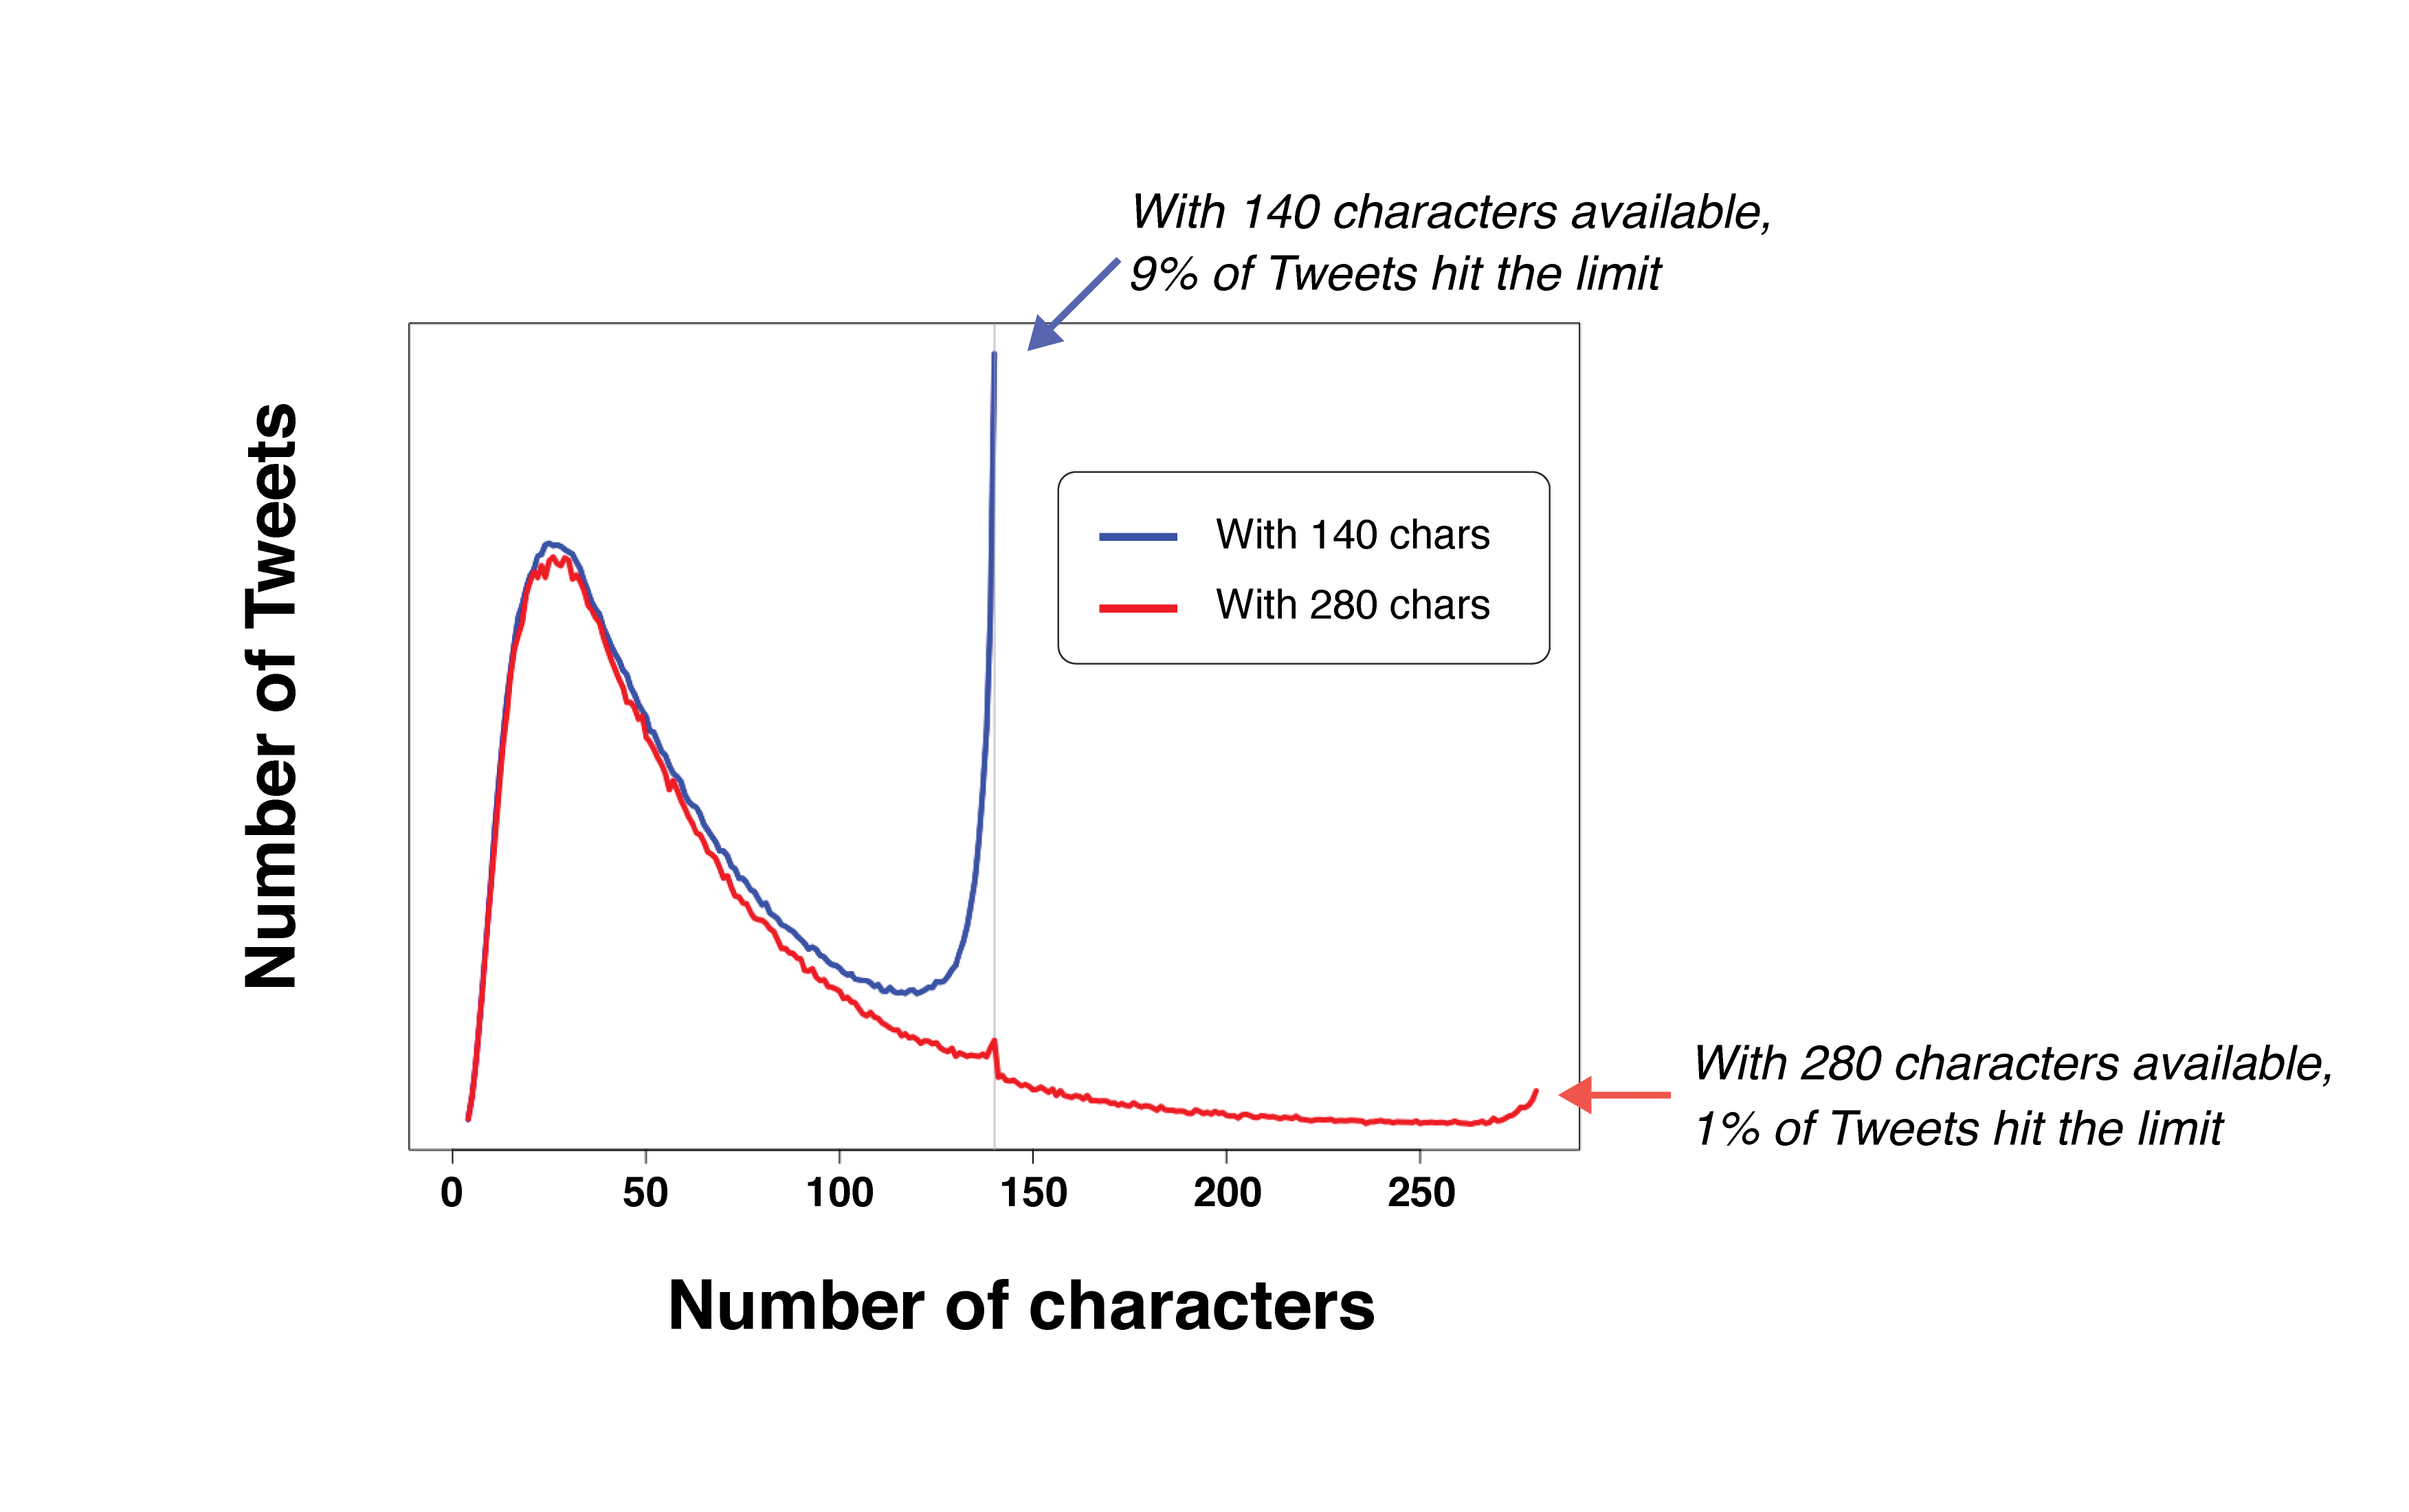 Twitter increases their character count to 280 for all users